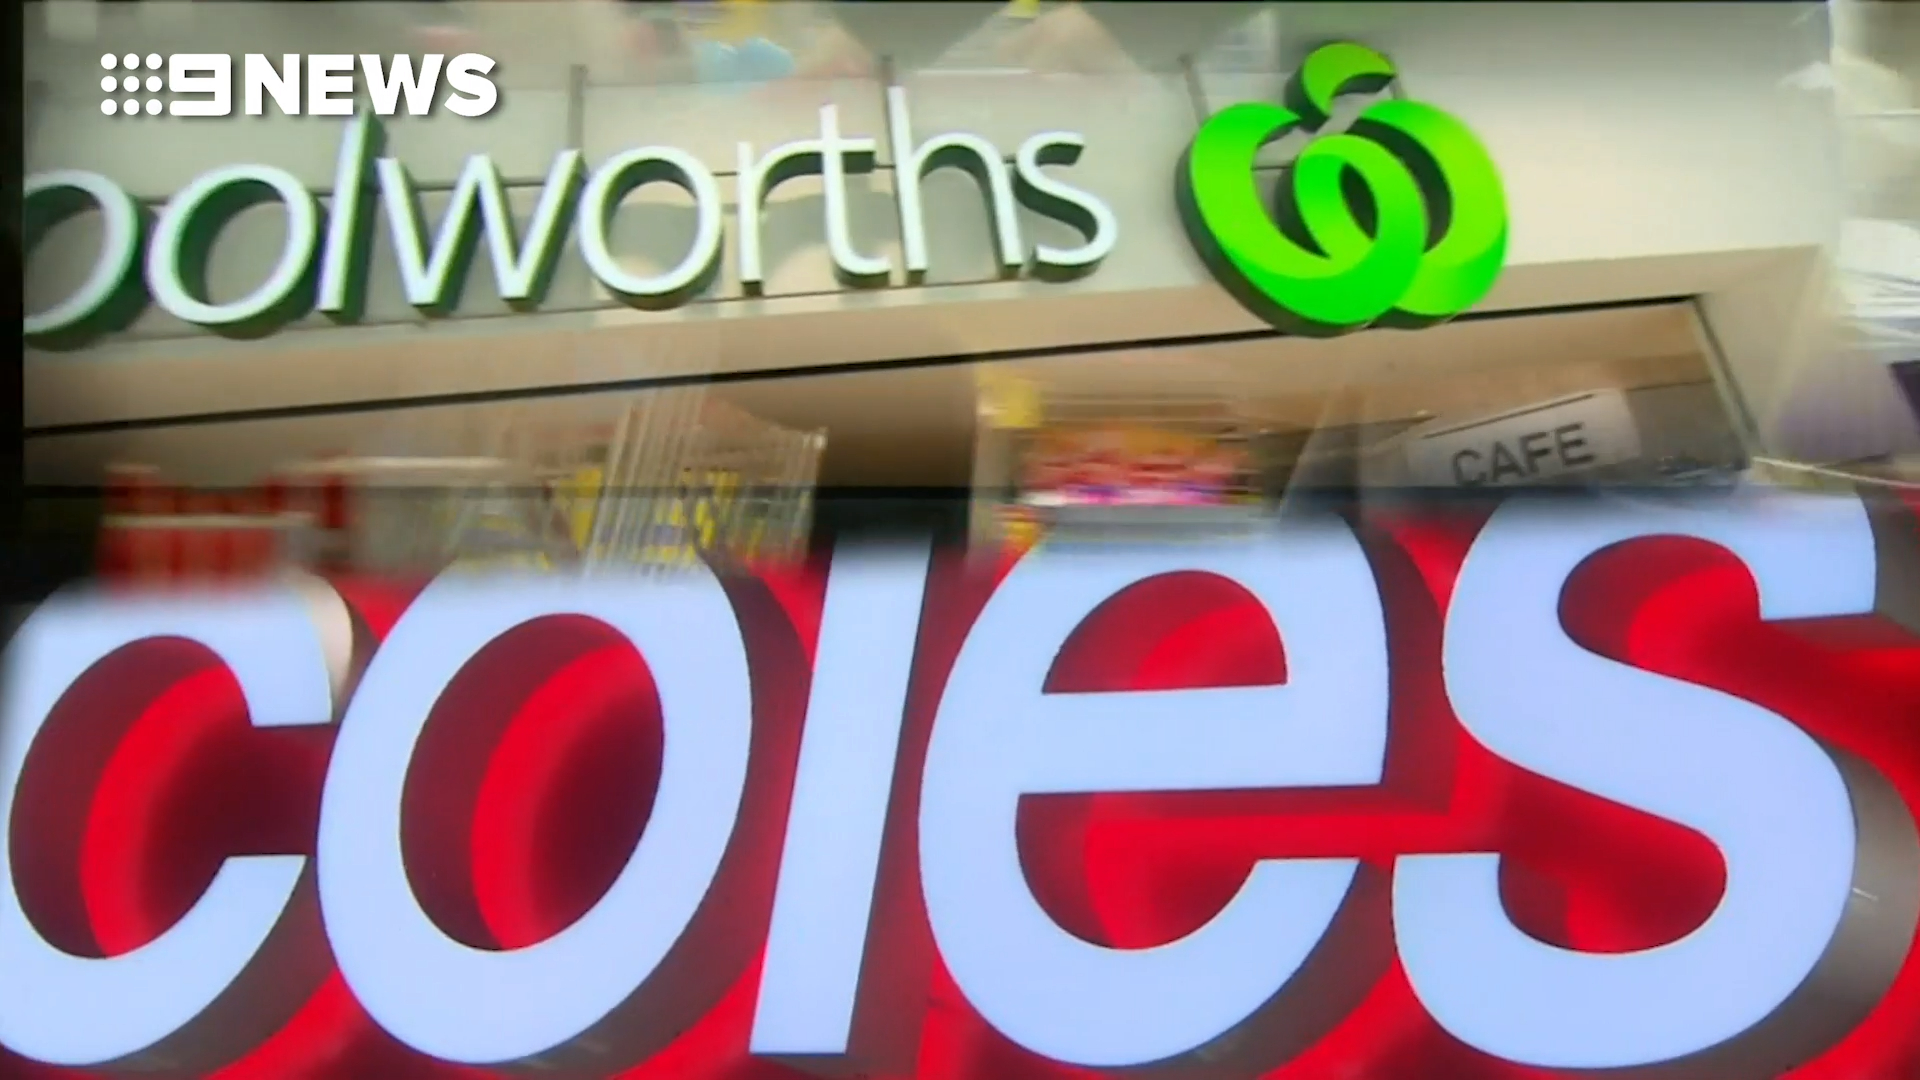 Woolworths To Launch Half Price Freezer Sale For One Day